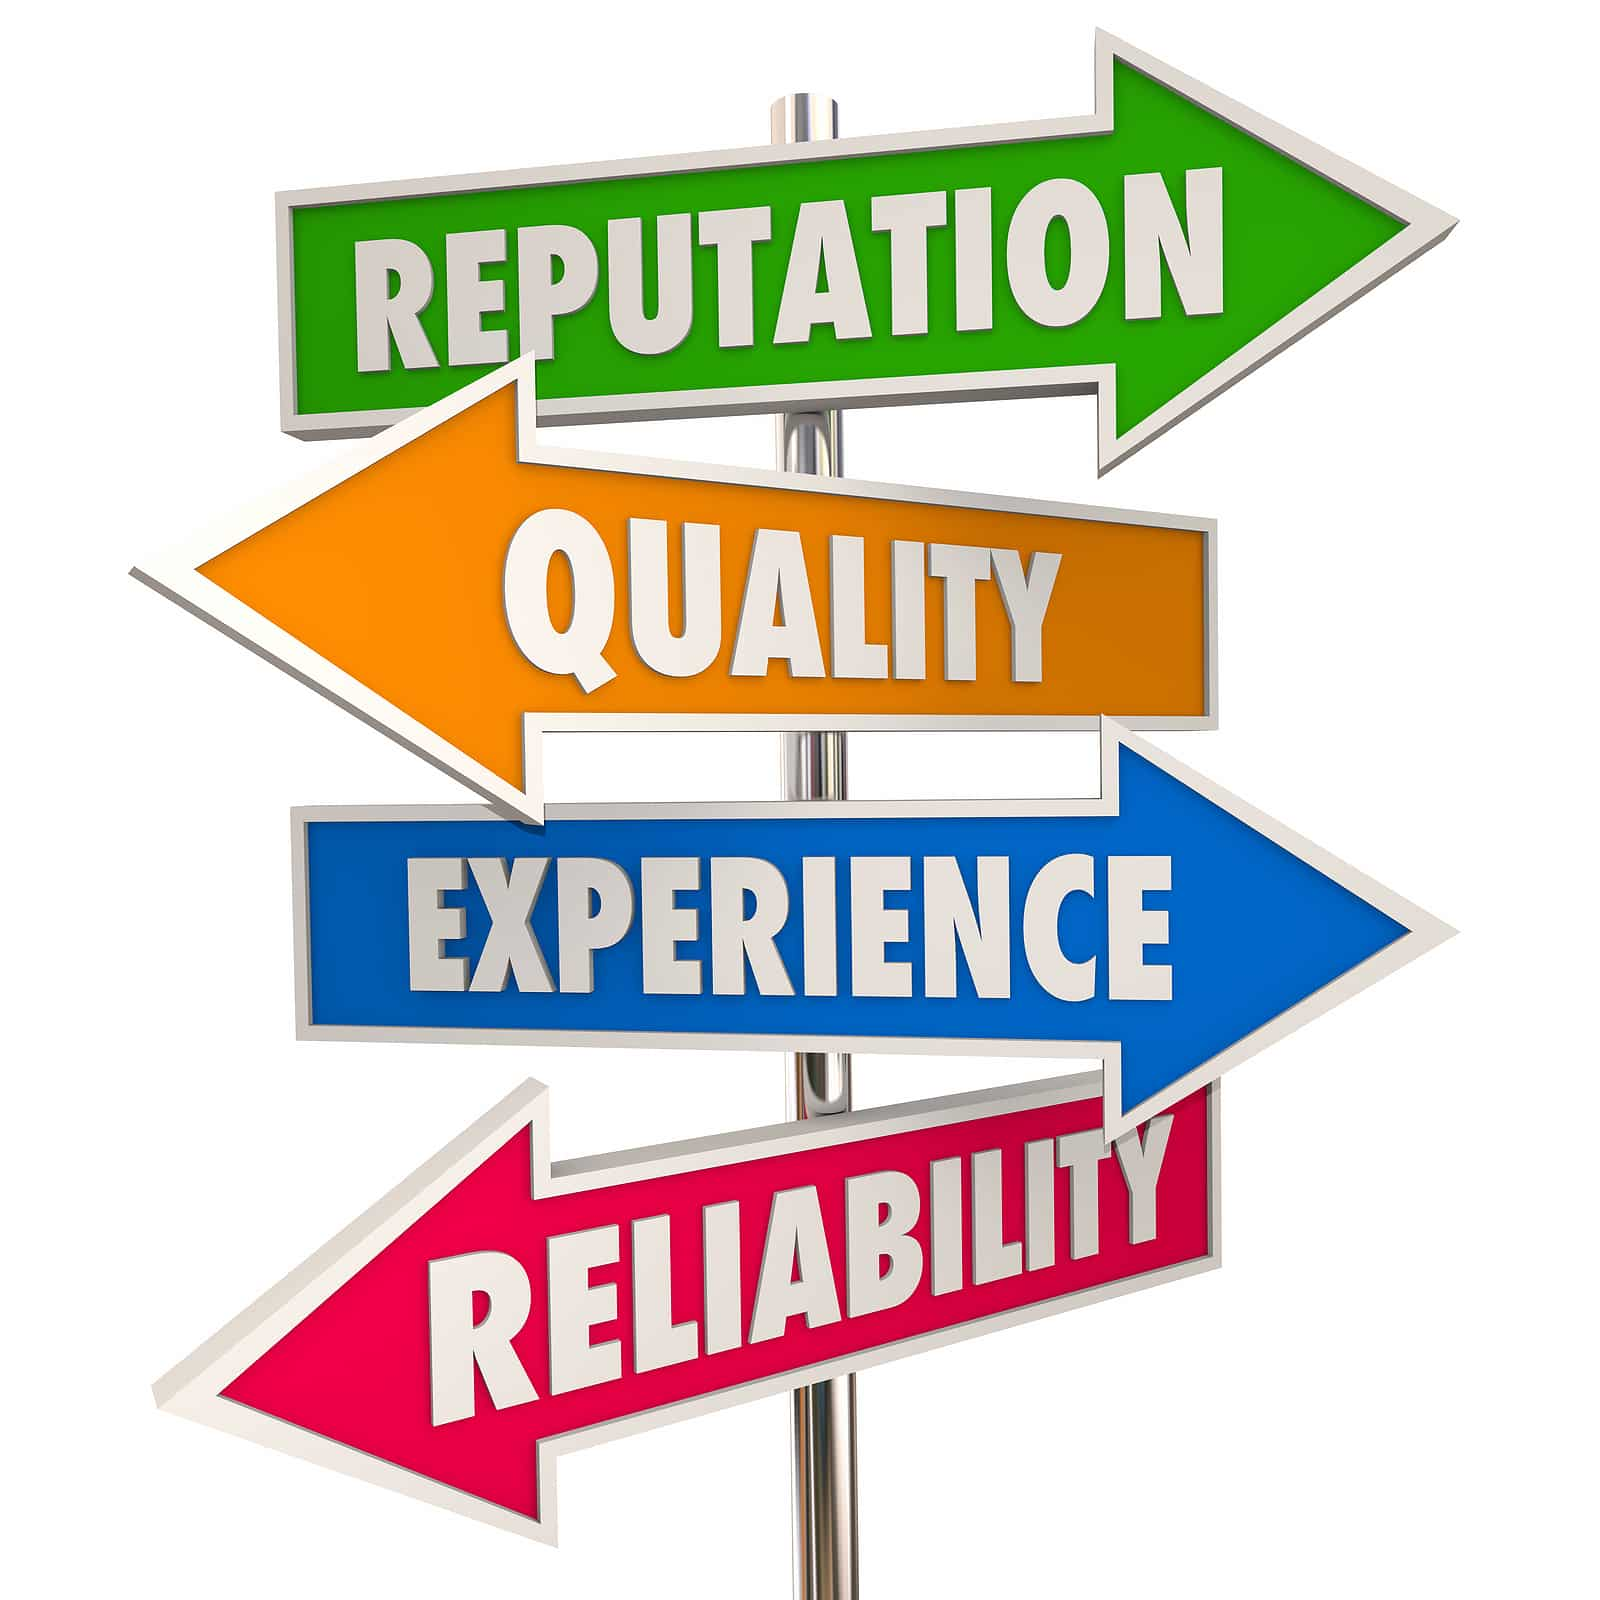 Why Do People Choose Personal Reputation Management Services, Reputation Quality Experience Reliability